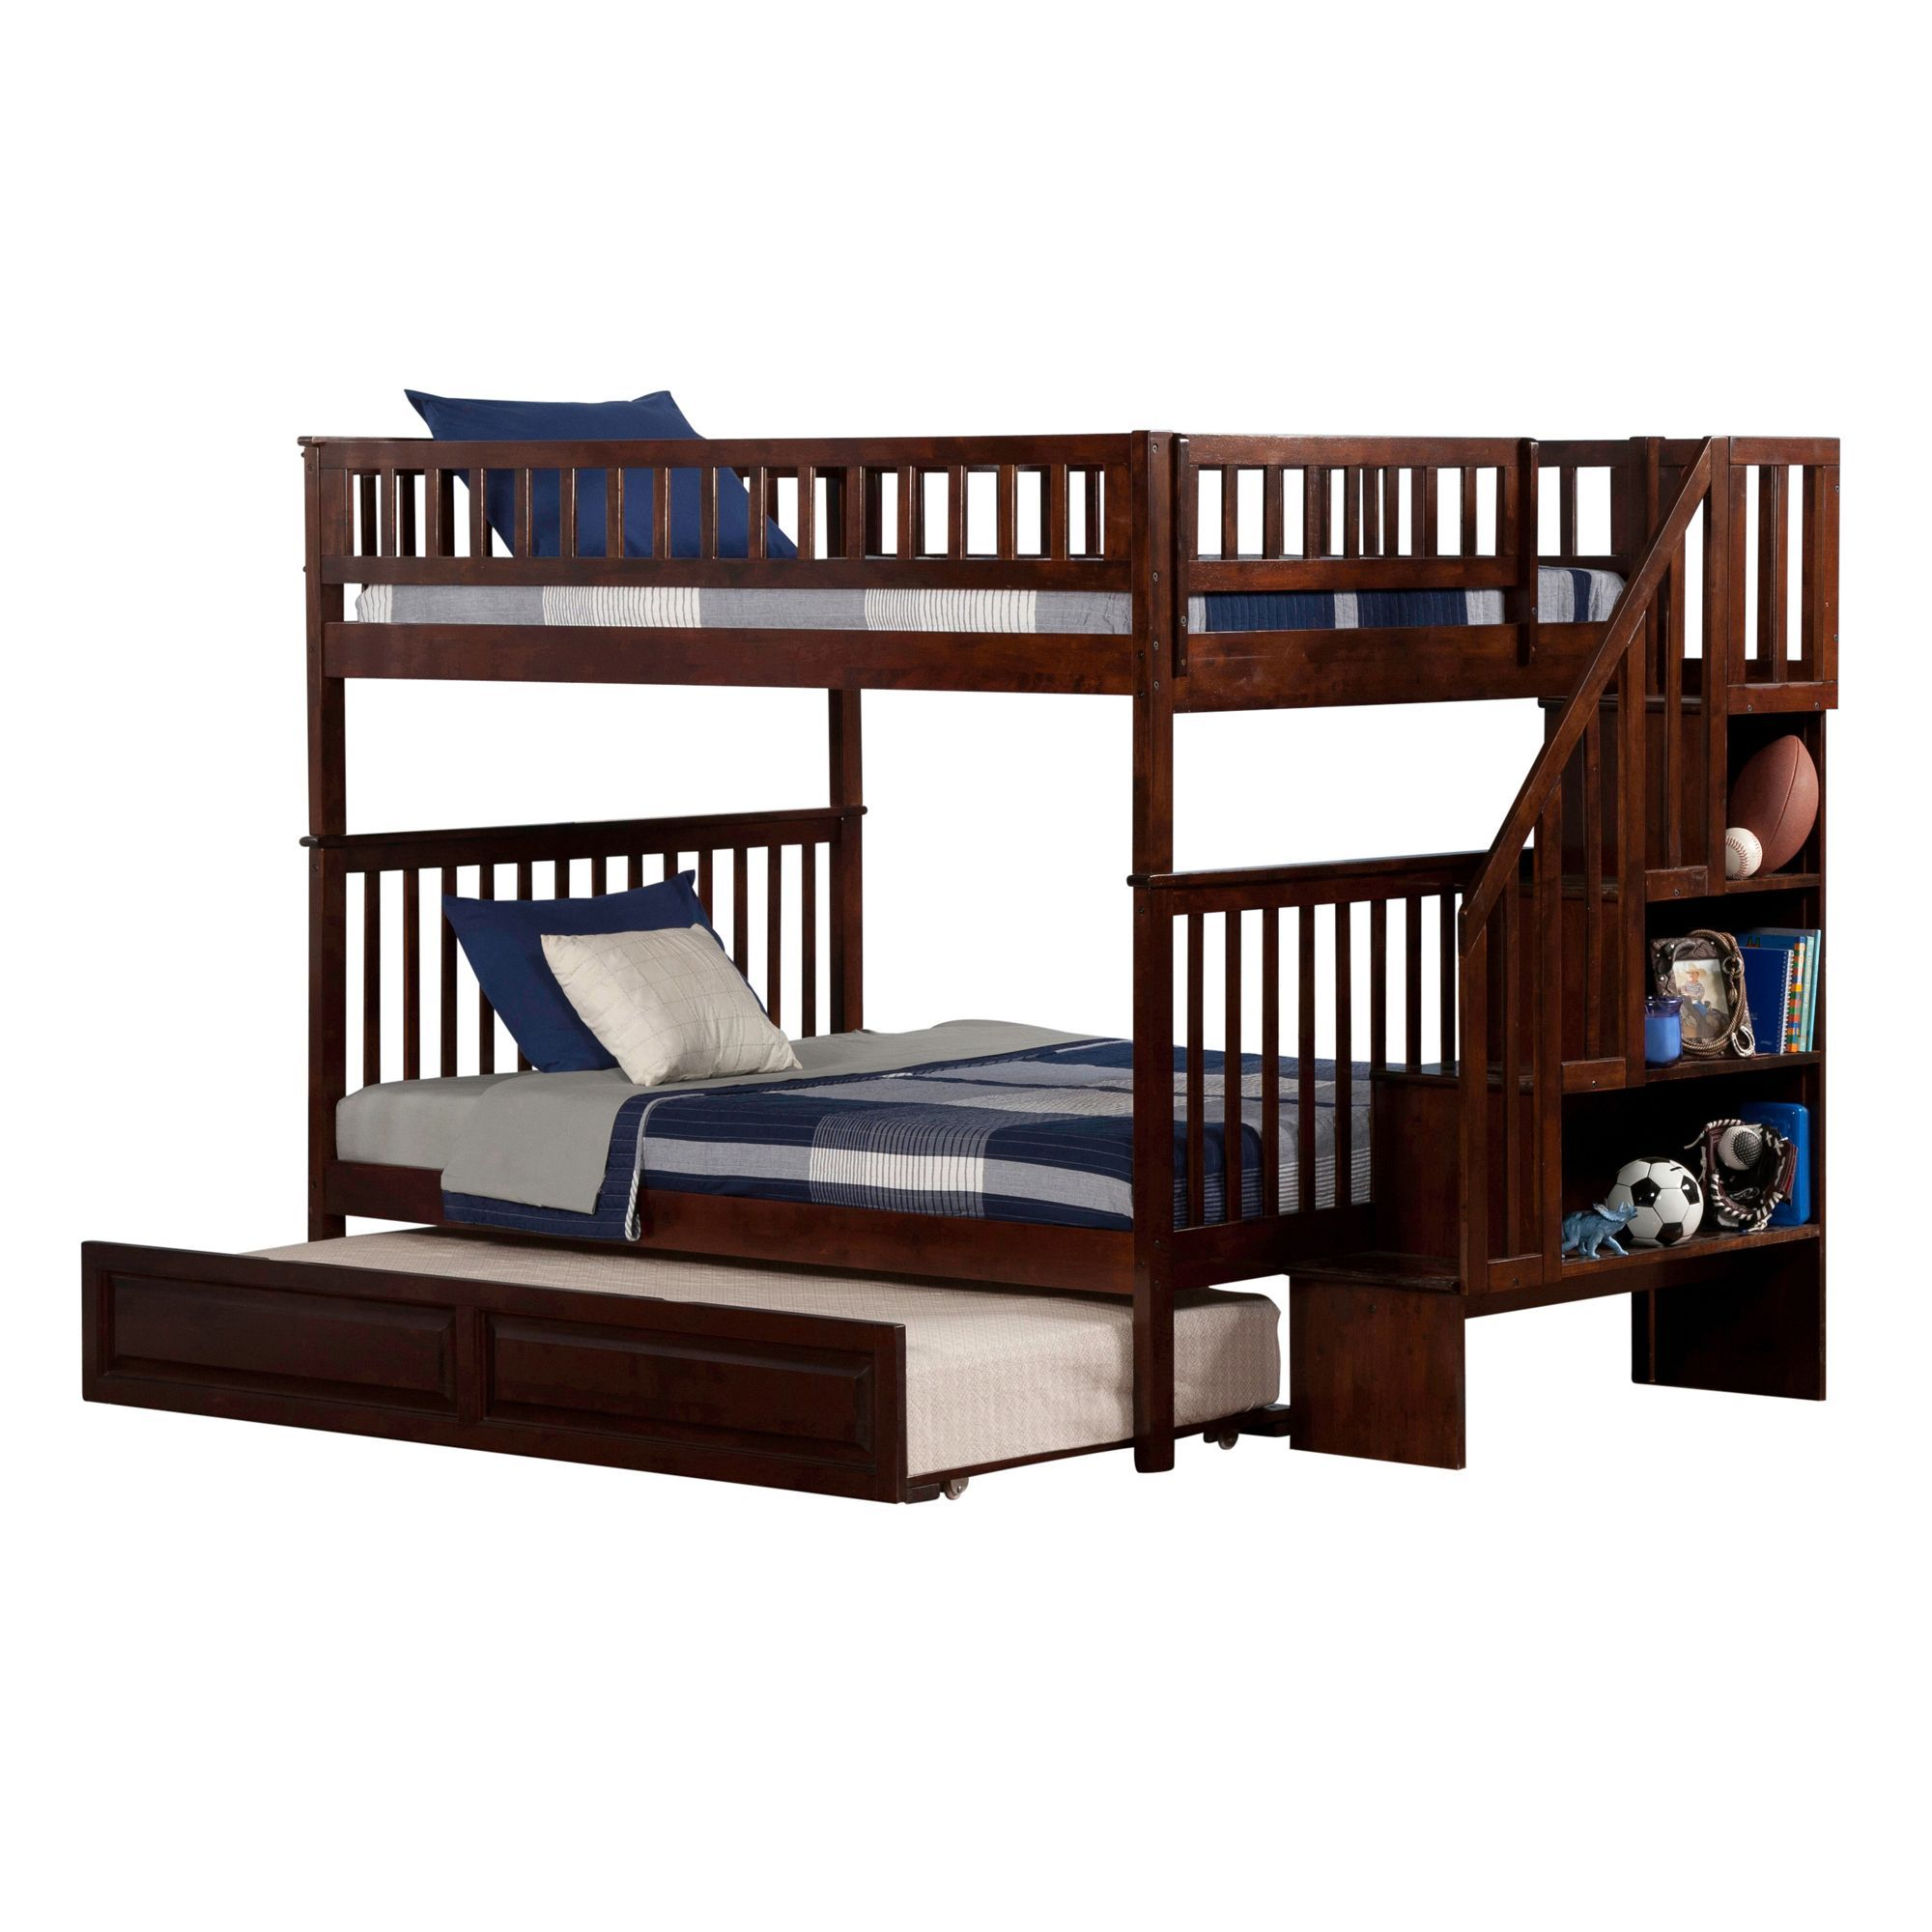 highlands over item products bunk number trundle with style kids twin beds bed full mission ne harper